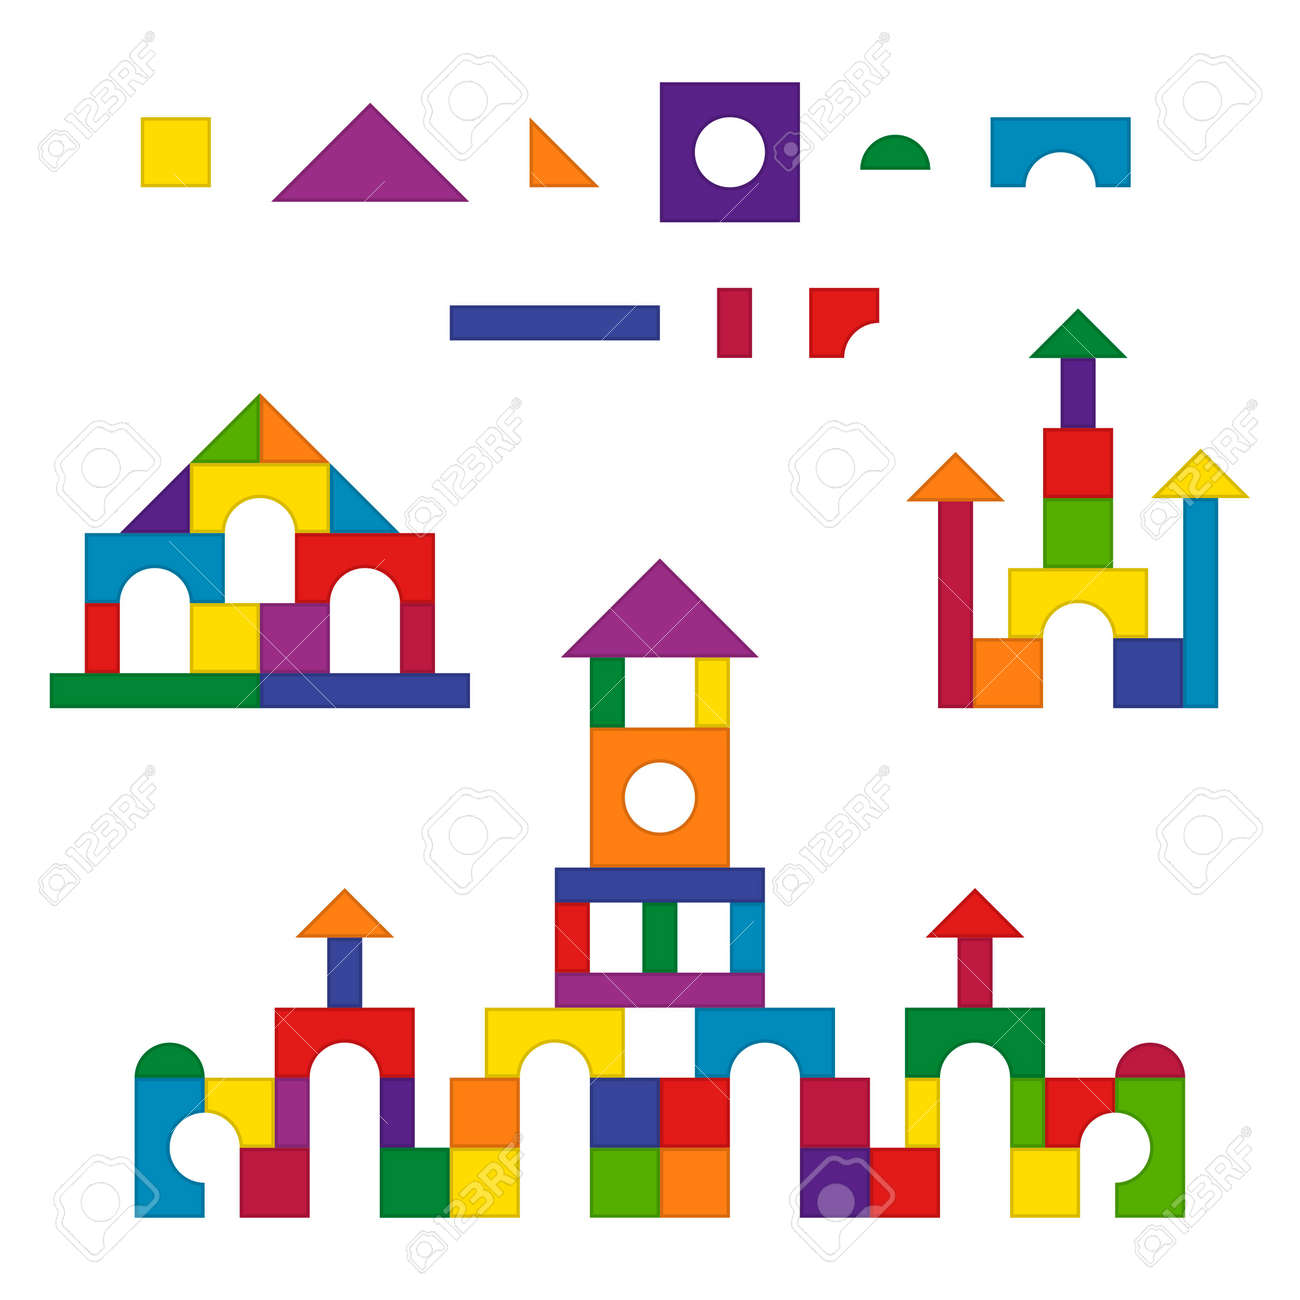 Multicolored wooden kids blocks toy details building kit set. Brick parts for the construction of a children tower, castle, house. Education toys for building and playing. Vector illustration - 164753878